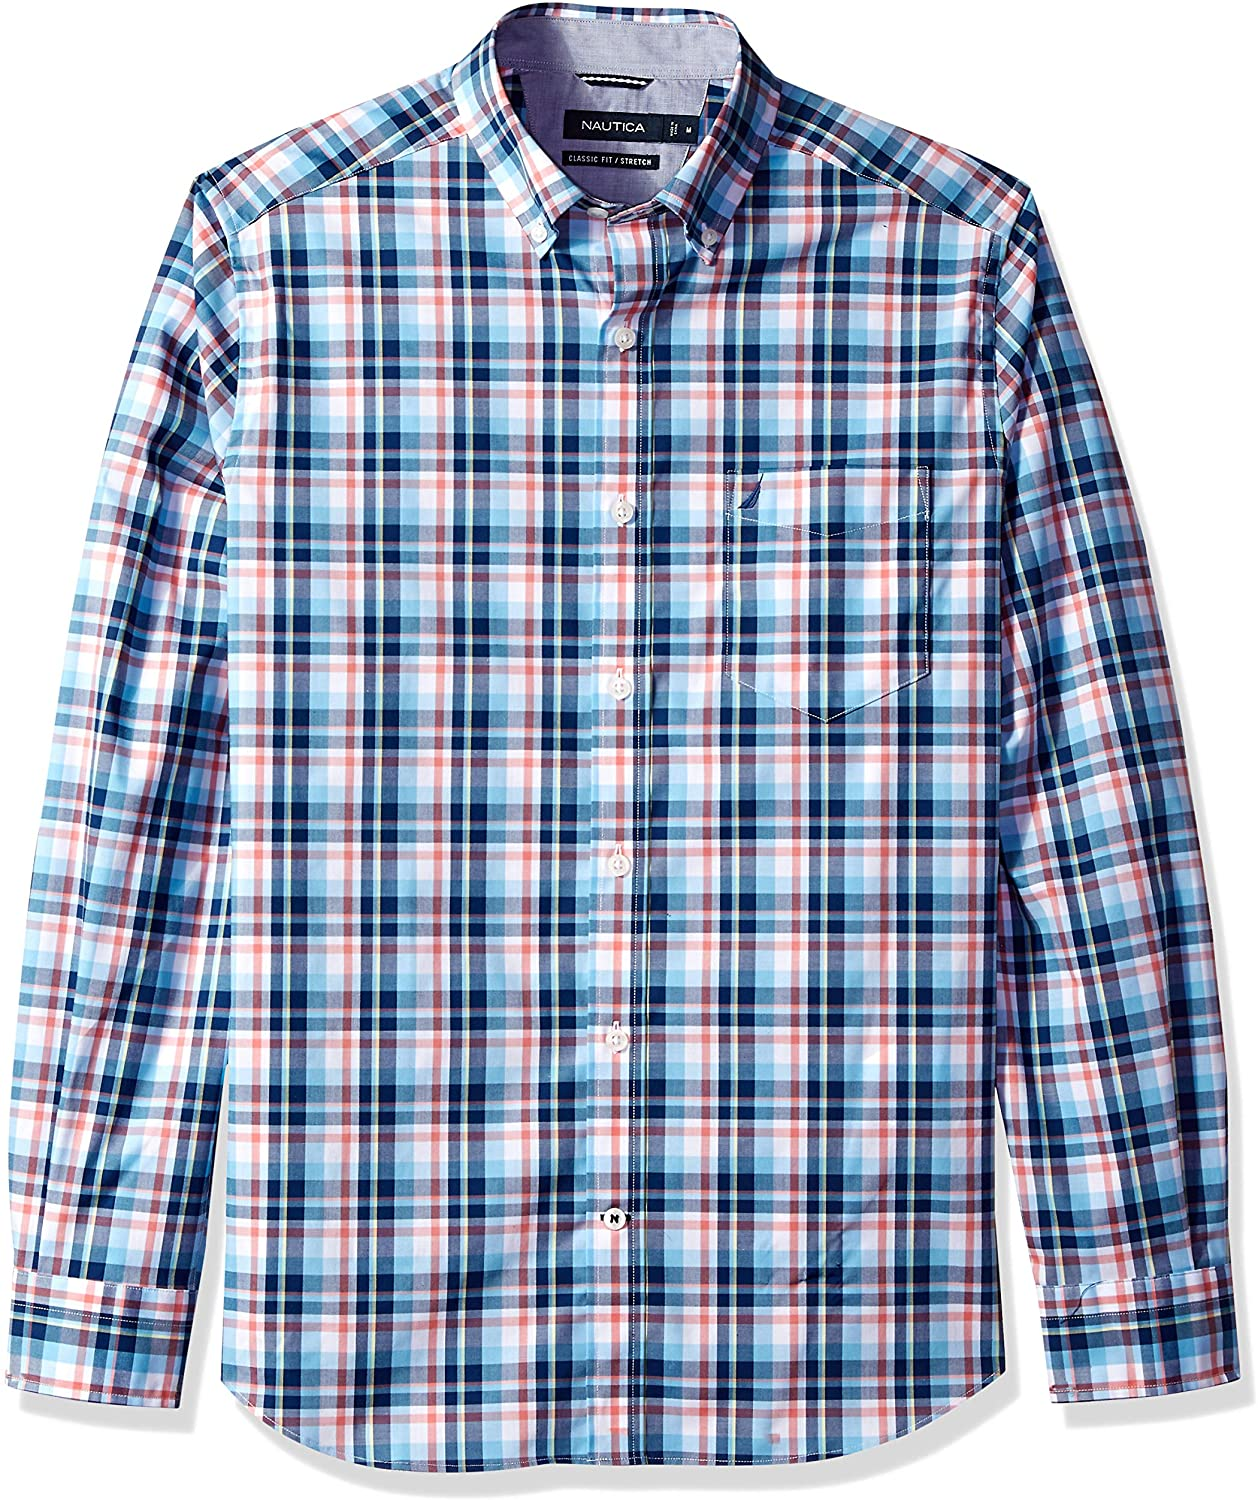 Nautica Men's Stretch Long Sleeve Plaid Button Down Shirt